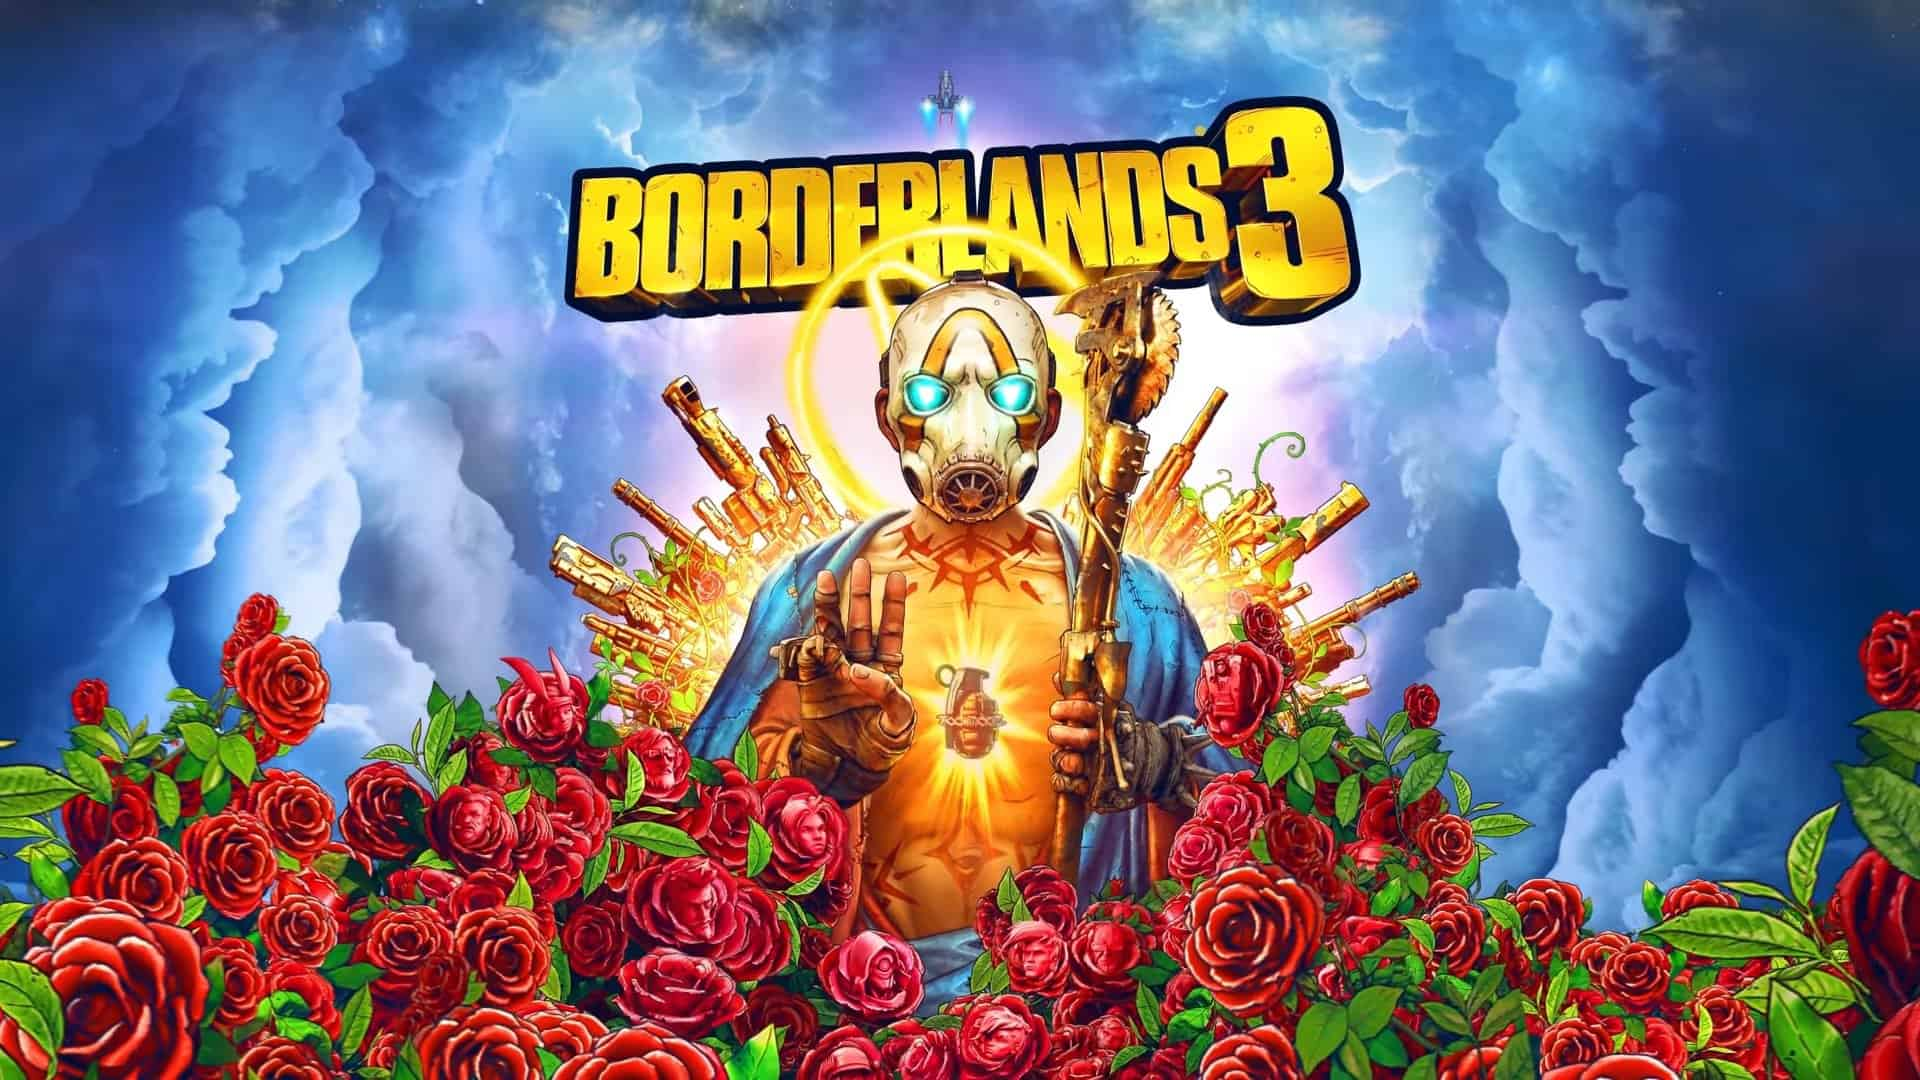 """See The Full Borderlands 3 Gameplay Reveal Presentation And Catch The New """"Gameplay Reveal Event Trailer"""" Now"""